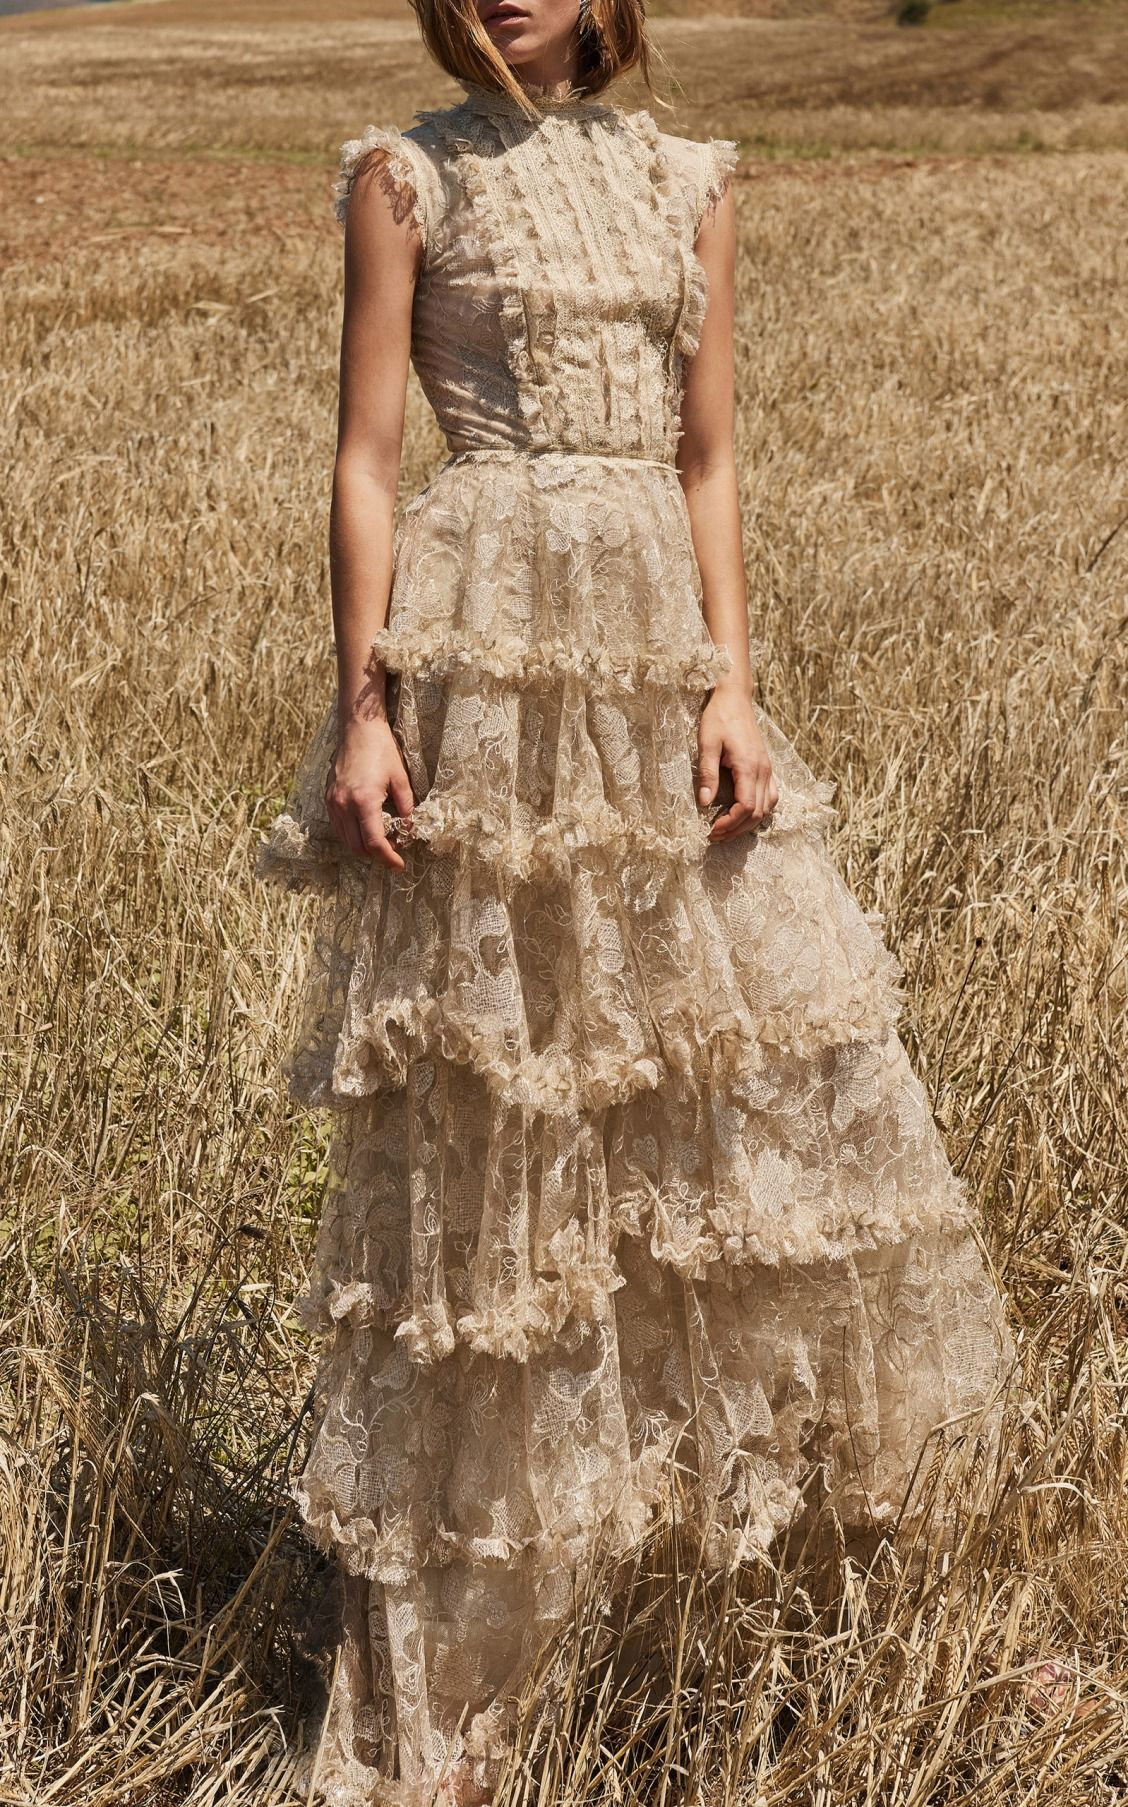 Lace dress gown  Tiered Lace Tulle Dress by Costarellos  Gorgeous in